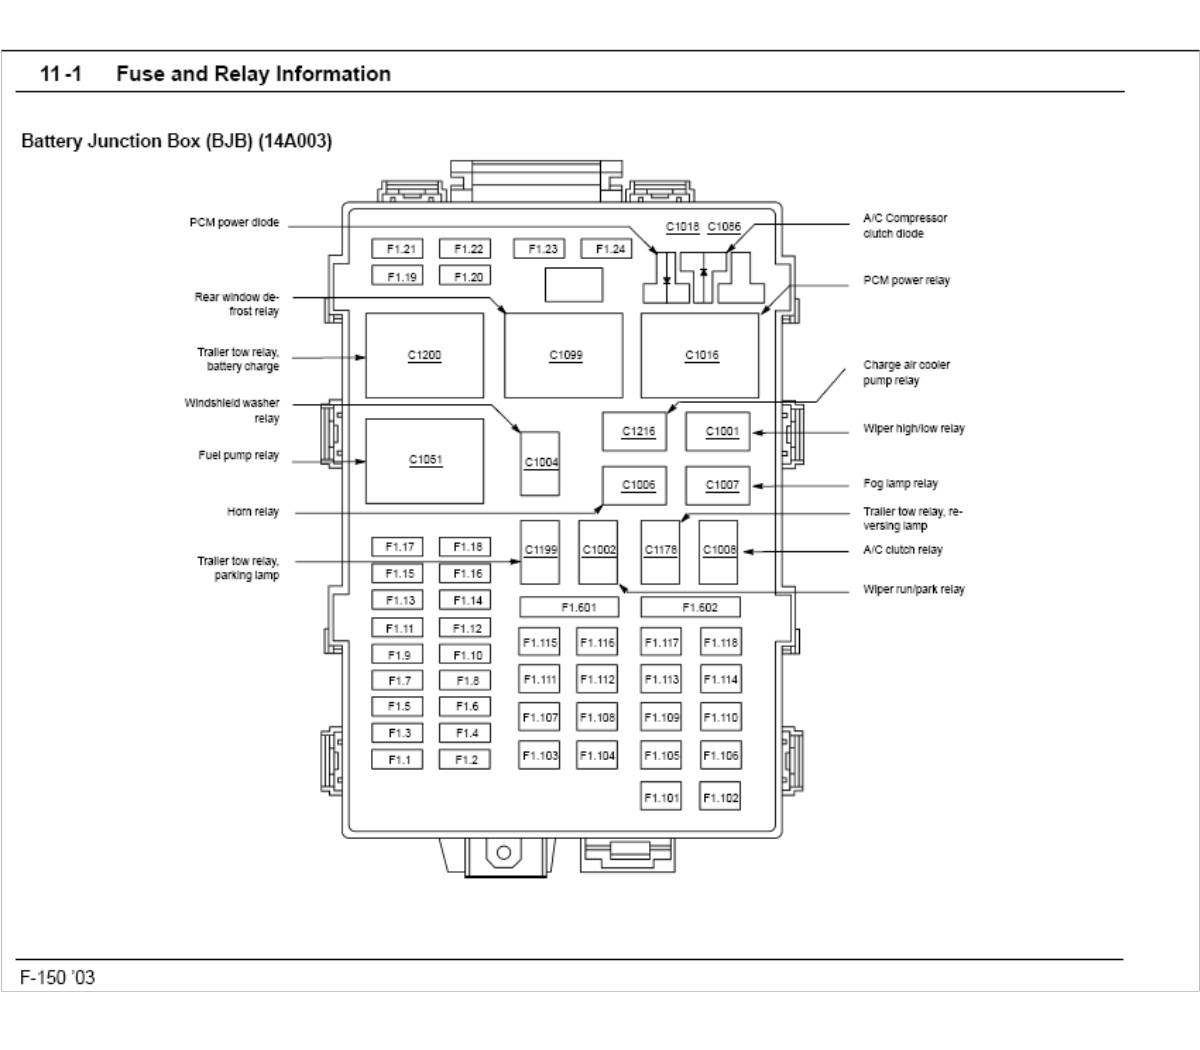 fuse box diagram 2001 ford f 150 v6 wiring diagram on the net 2001 ford f150 fuse box 2001 ford f 150 fuse box #10